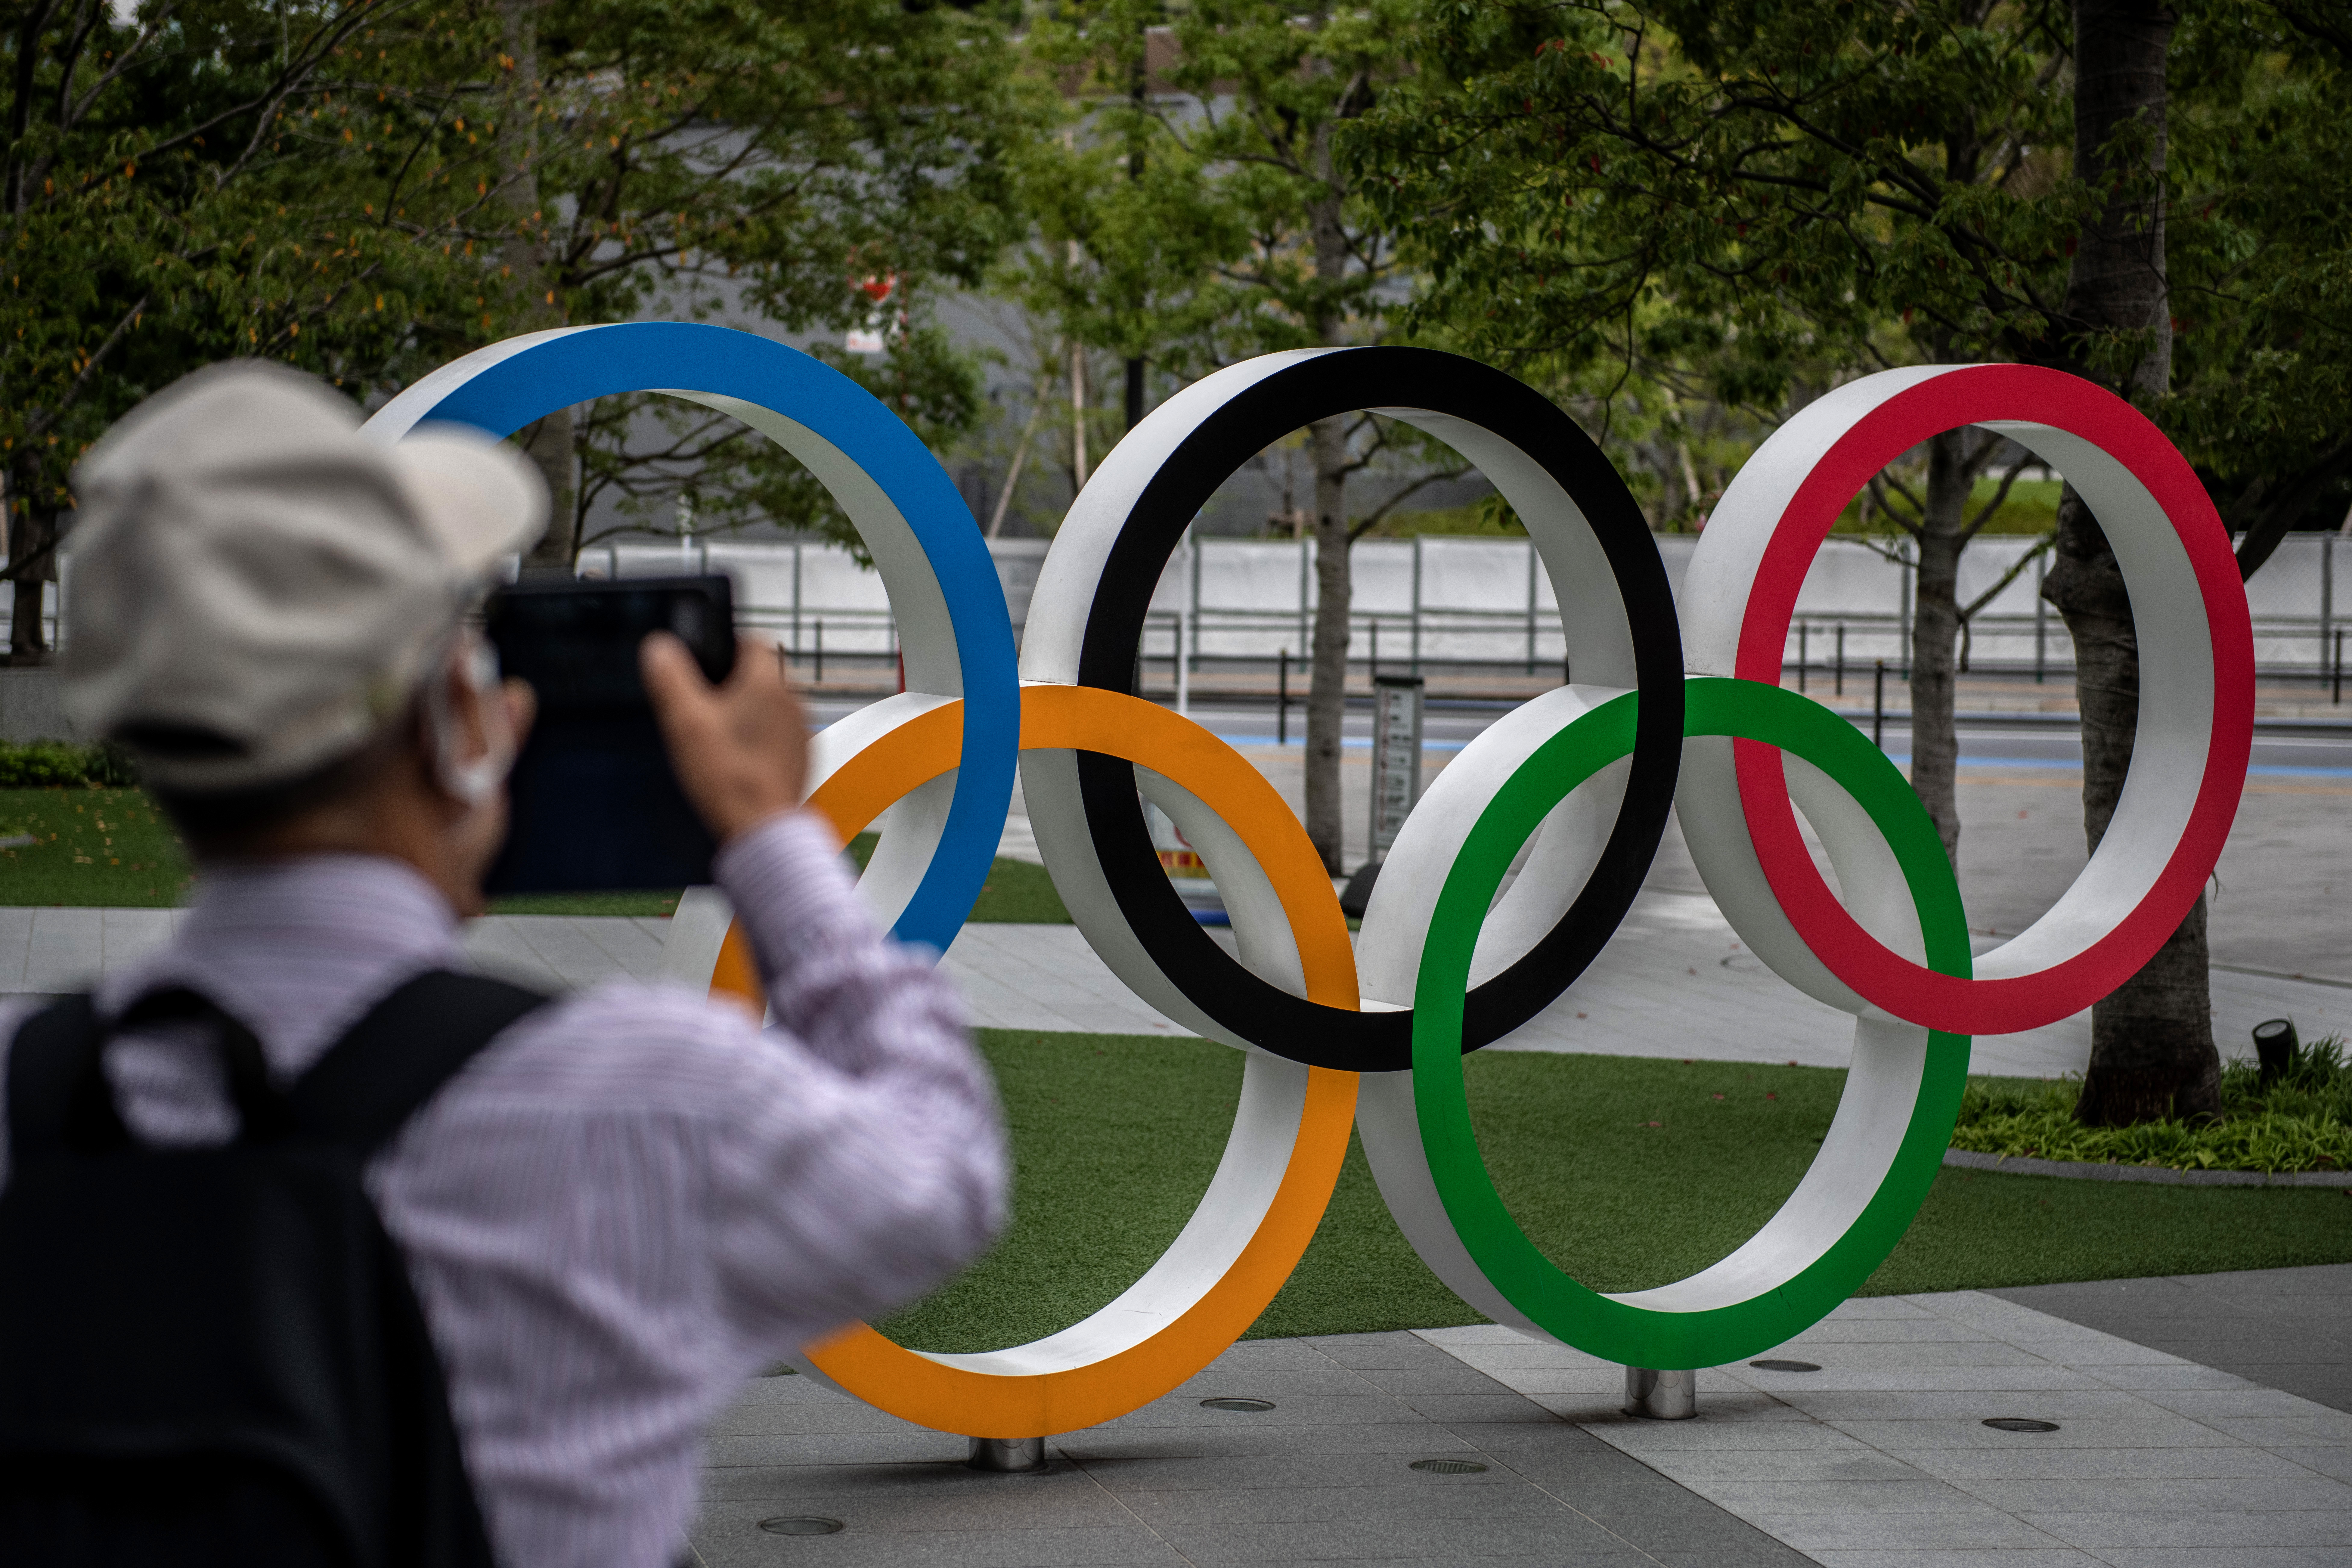 A man photographs the Olympic Rings in Tokyo, Japan on October 13.